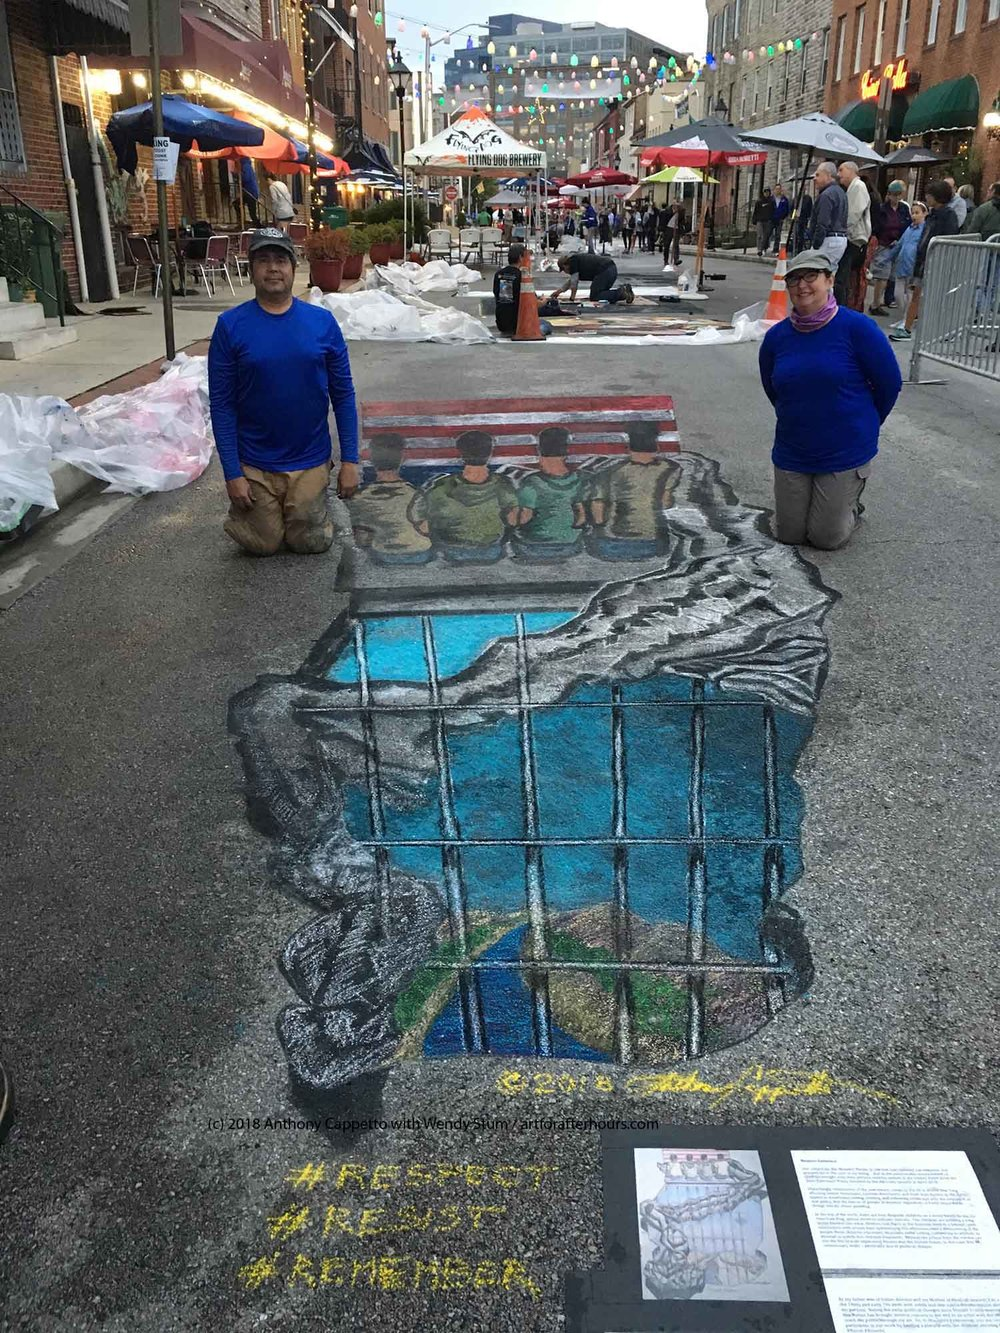 Art for After Hours team of Anthony Cappetto with Wendy Stum proudly posing within the 3D street painting art piece 'Respect Existence'